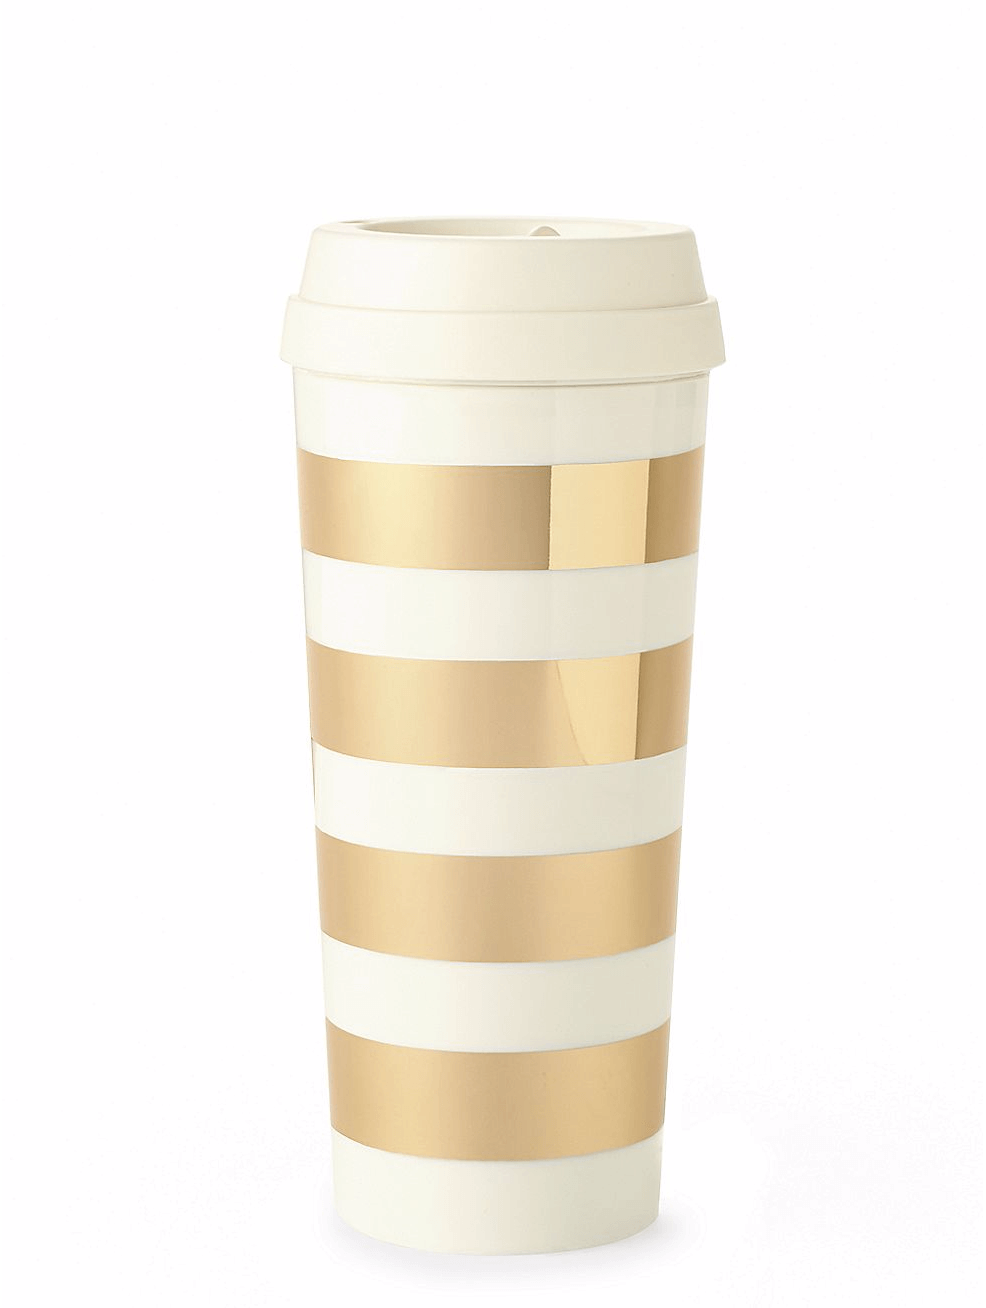 A lovely, thermal mug to keep your tea or coffee in at your desk - an essential, if you ask me!